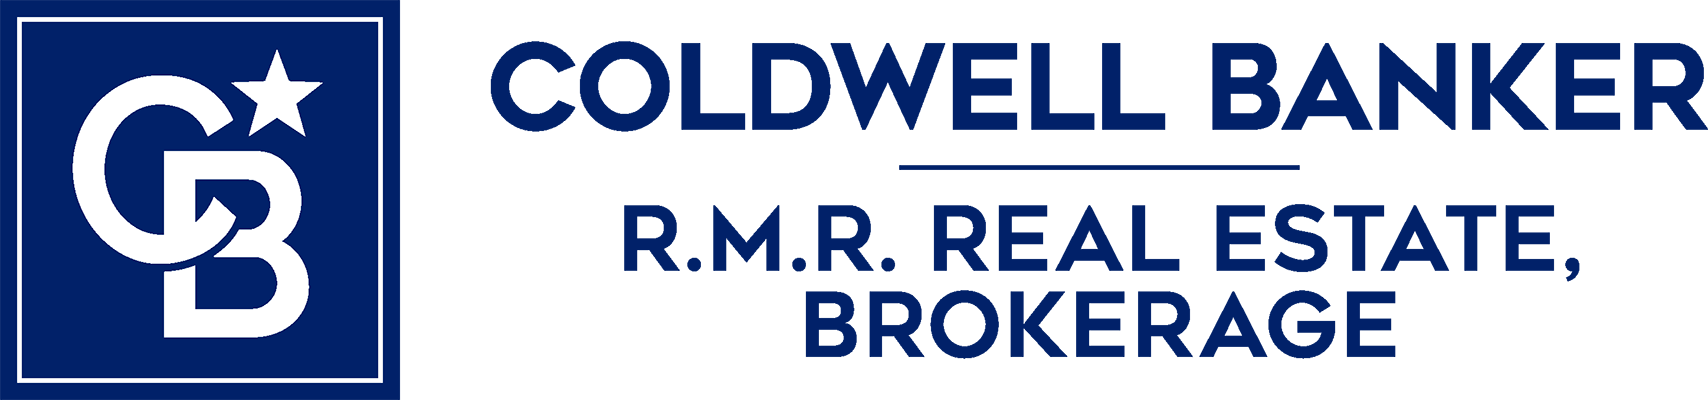 Coldwell Banker - R.M.R. Real Estate, Brokerage *